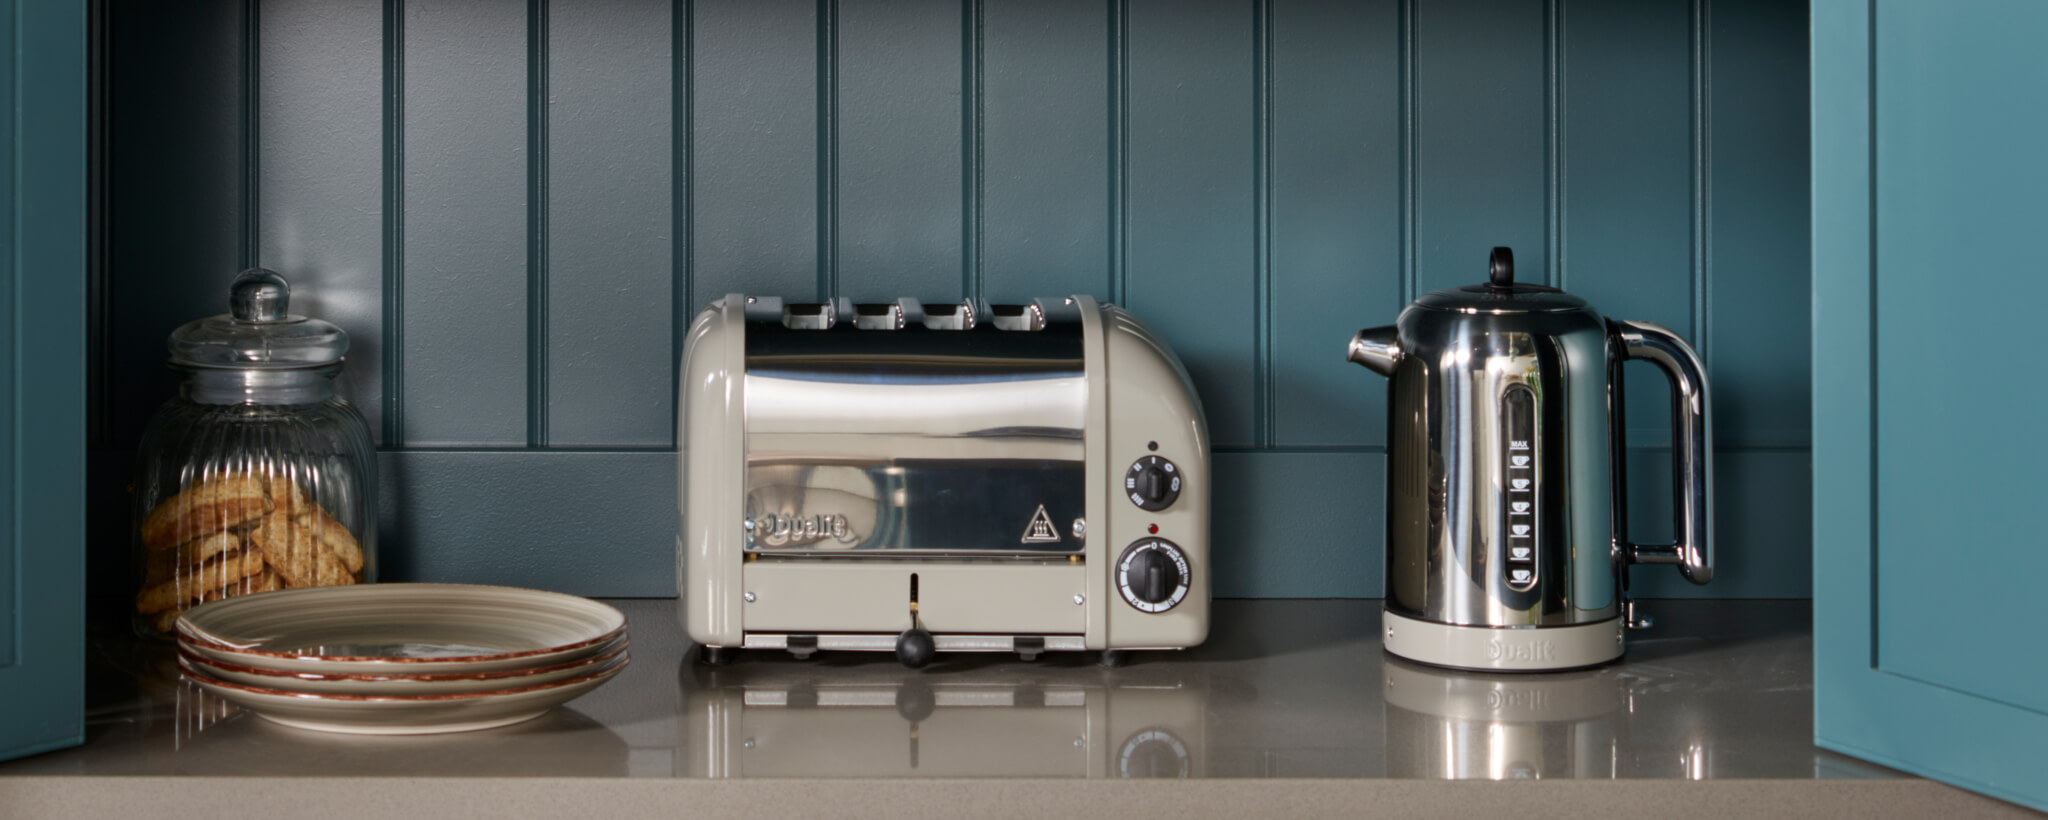 Win Your Own Dualit Kettle And Toaster